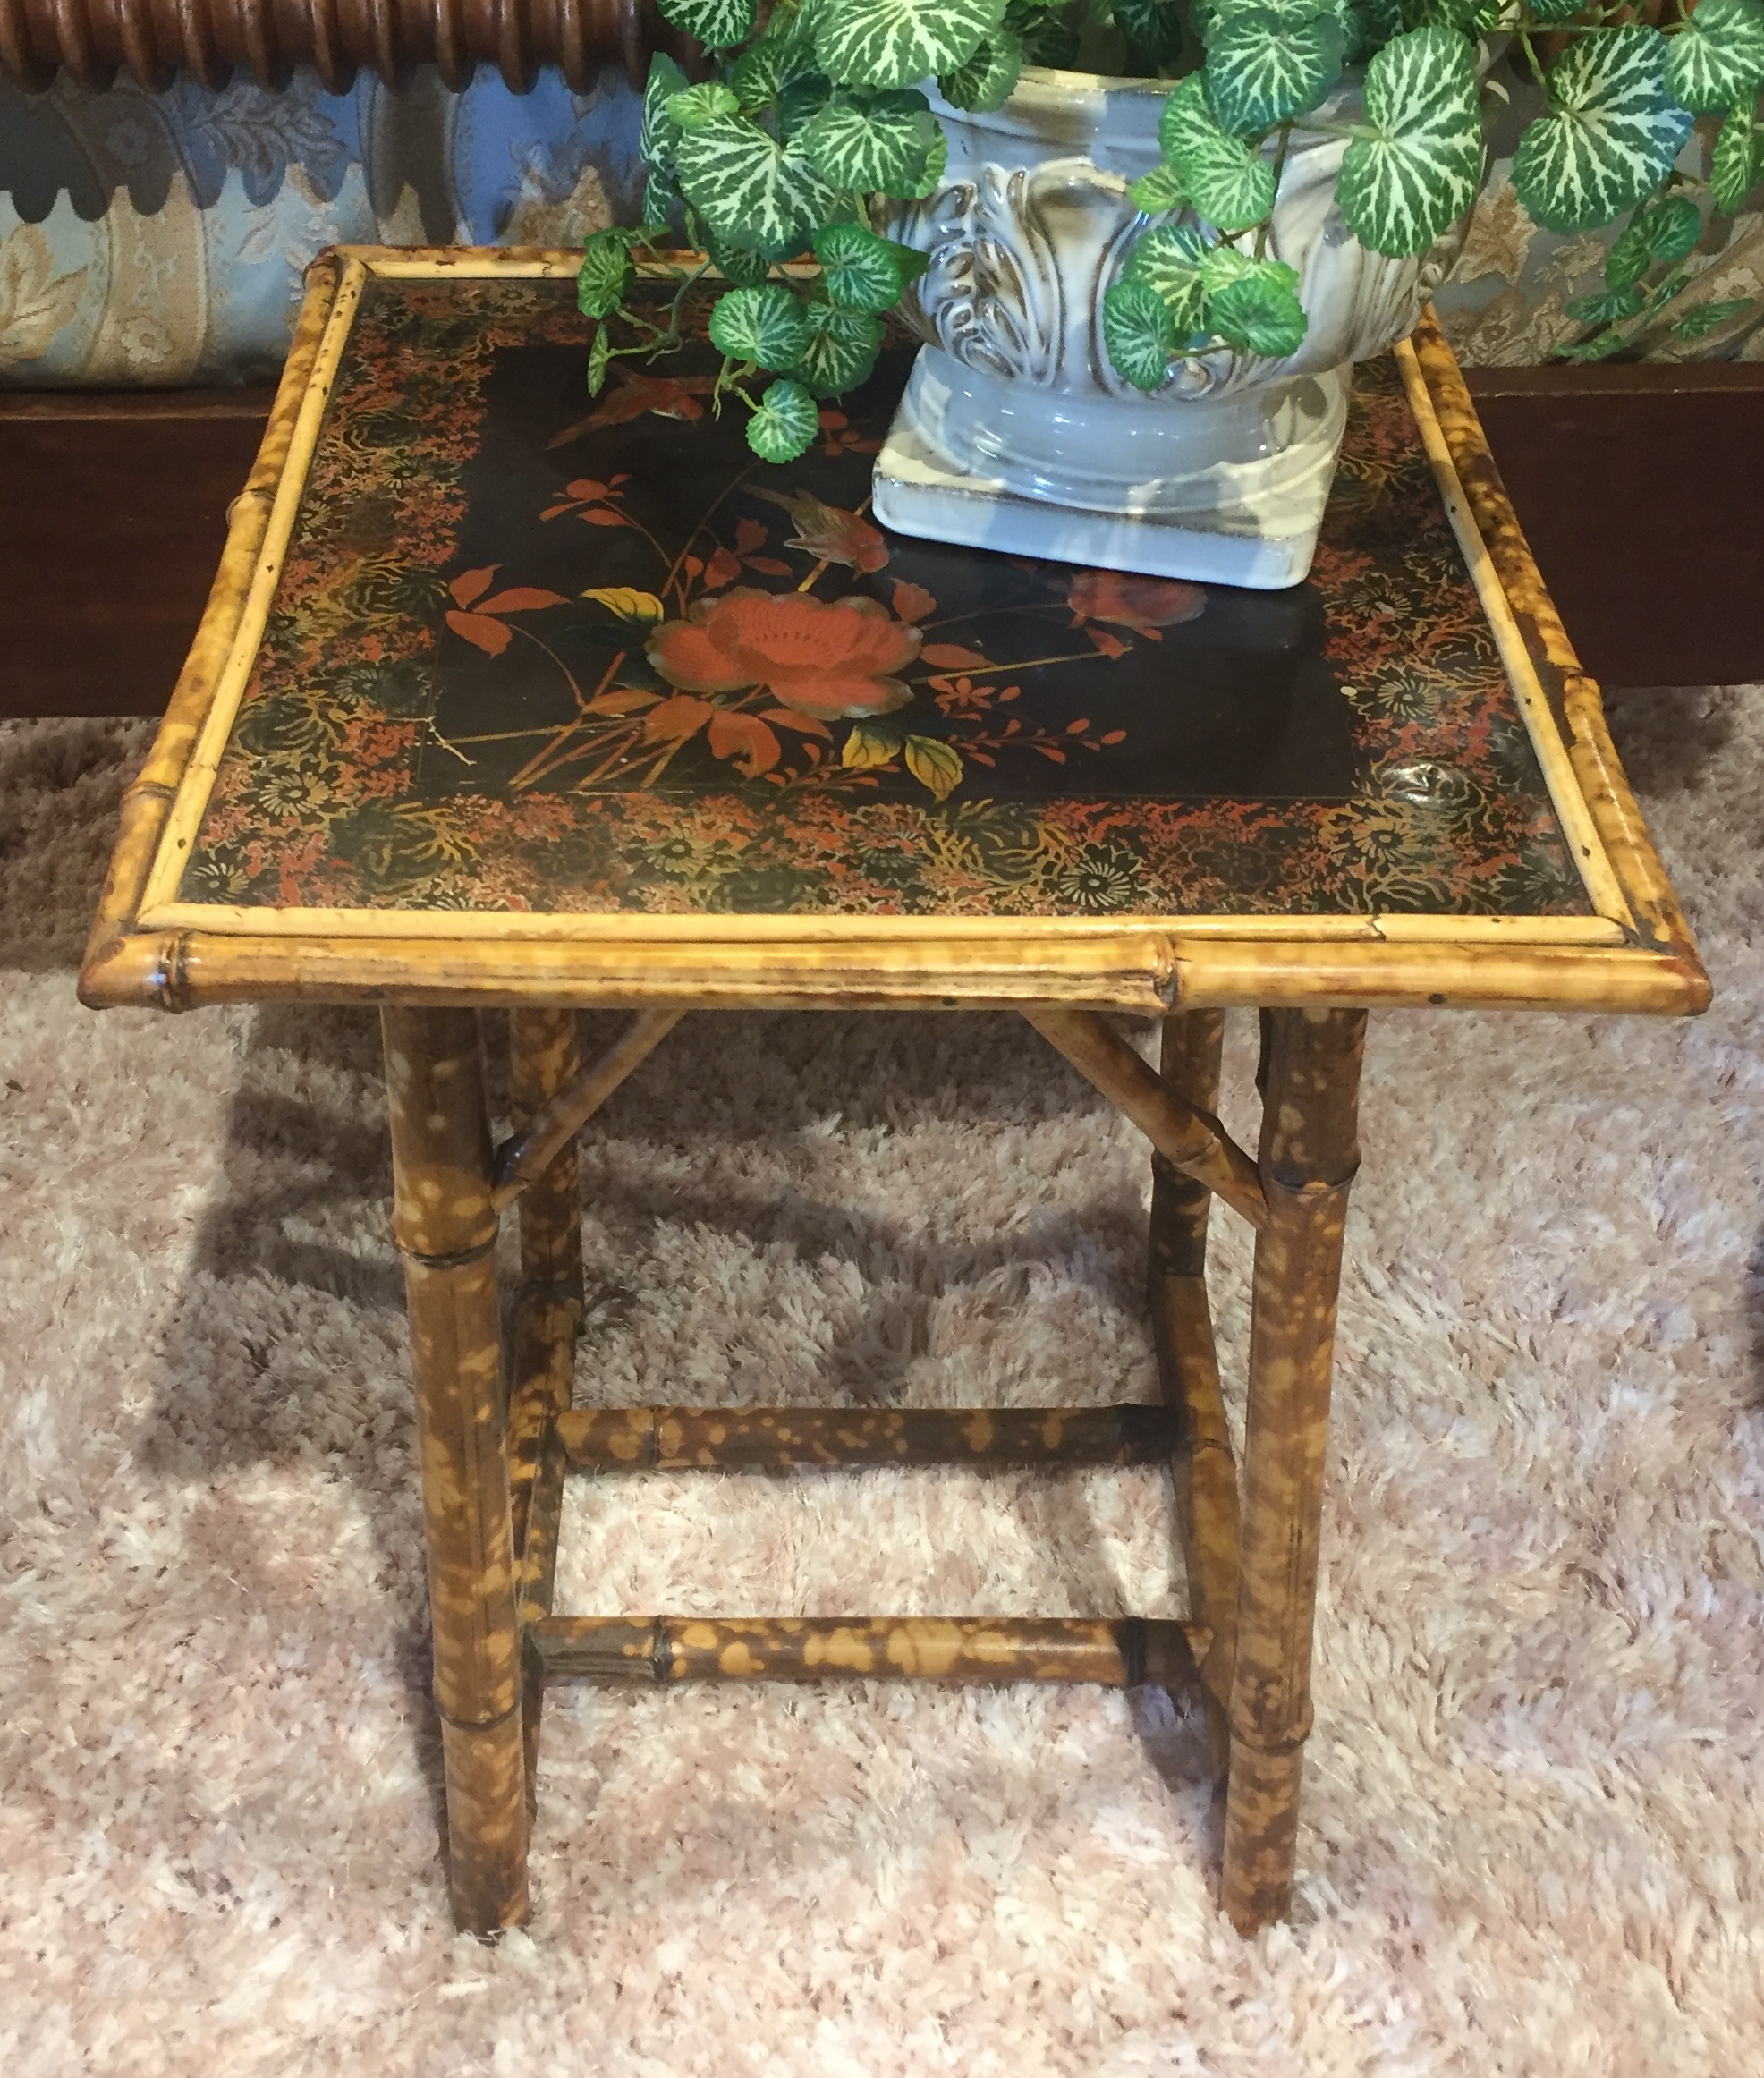 Small Floral Side Table $59.95 - C1107 24223